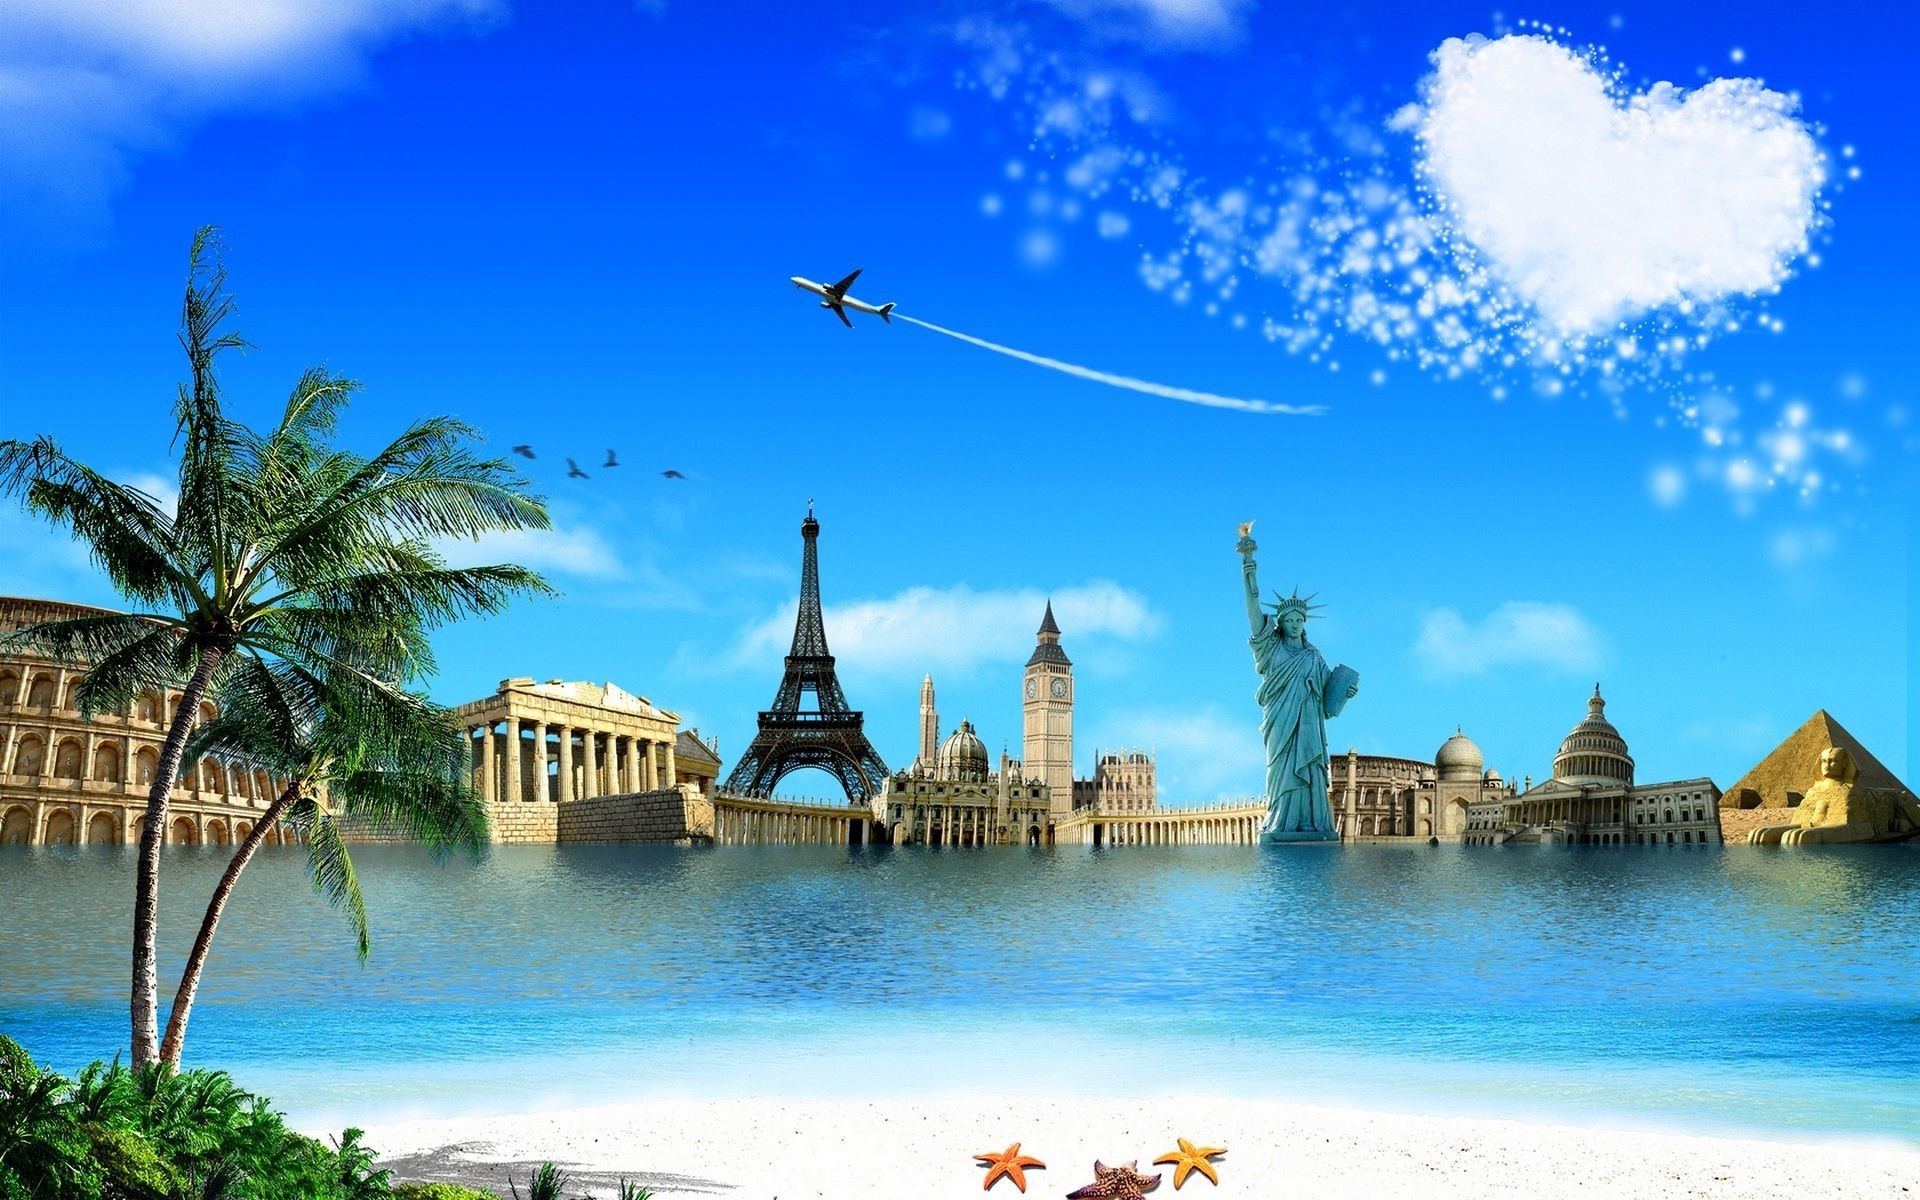 1920x1200, World All Wonders In One Wallpaper   Data - Seven Wonders Of The World Background - HD Wallpaper